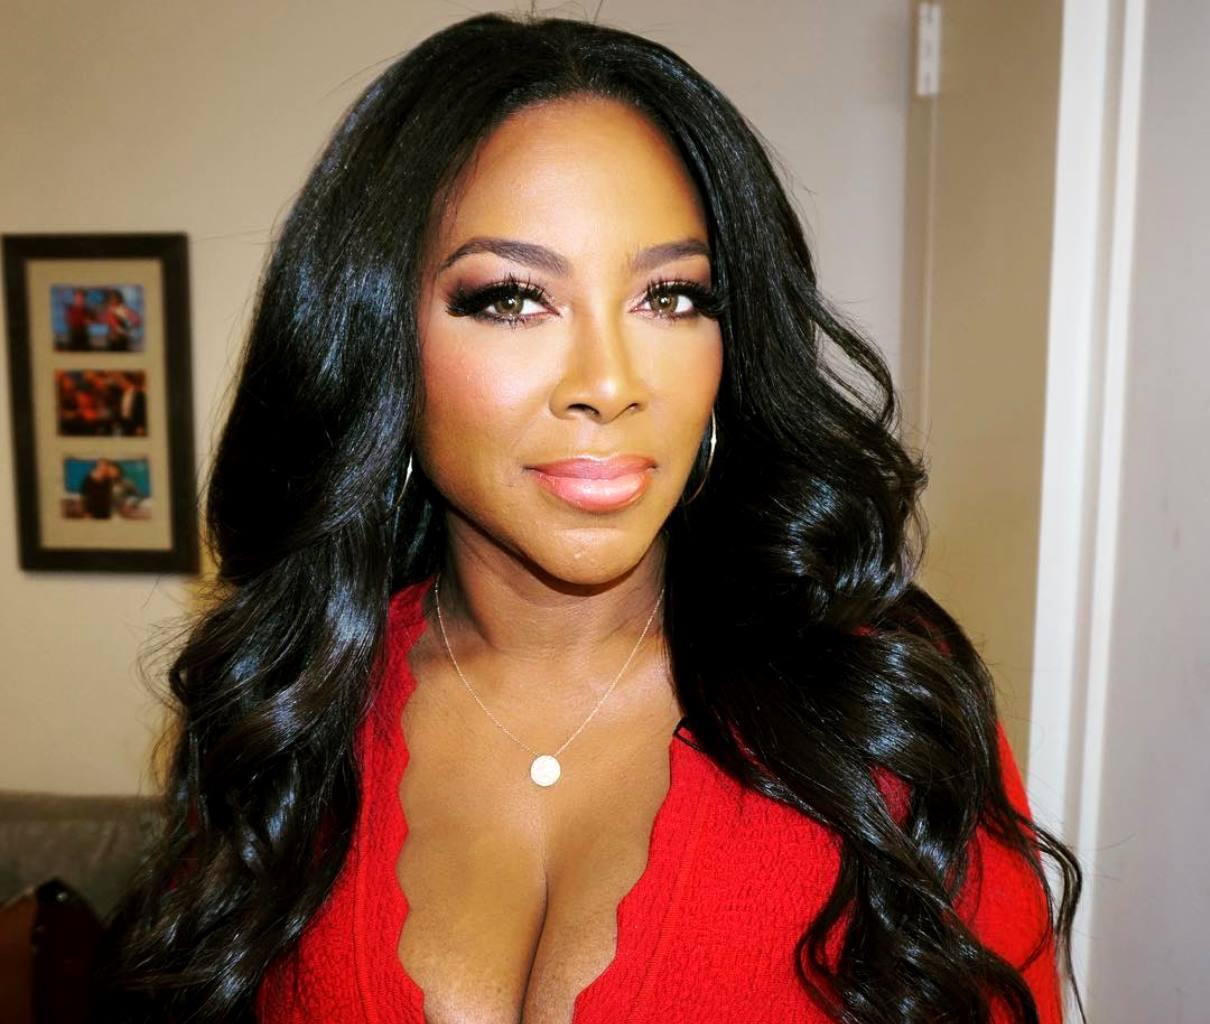 Kenya Moore's Fans Debate Whether She Should Go Back To RHOA Or Keep Herself For Something More Appropriate For Her 'Class, Talent, And Stature'